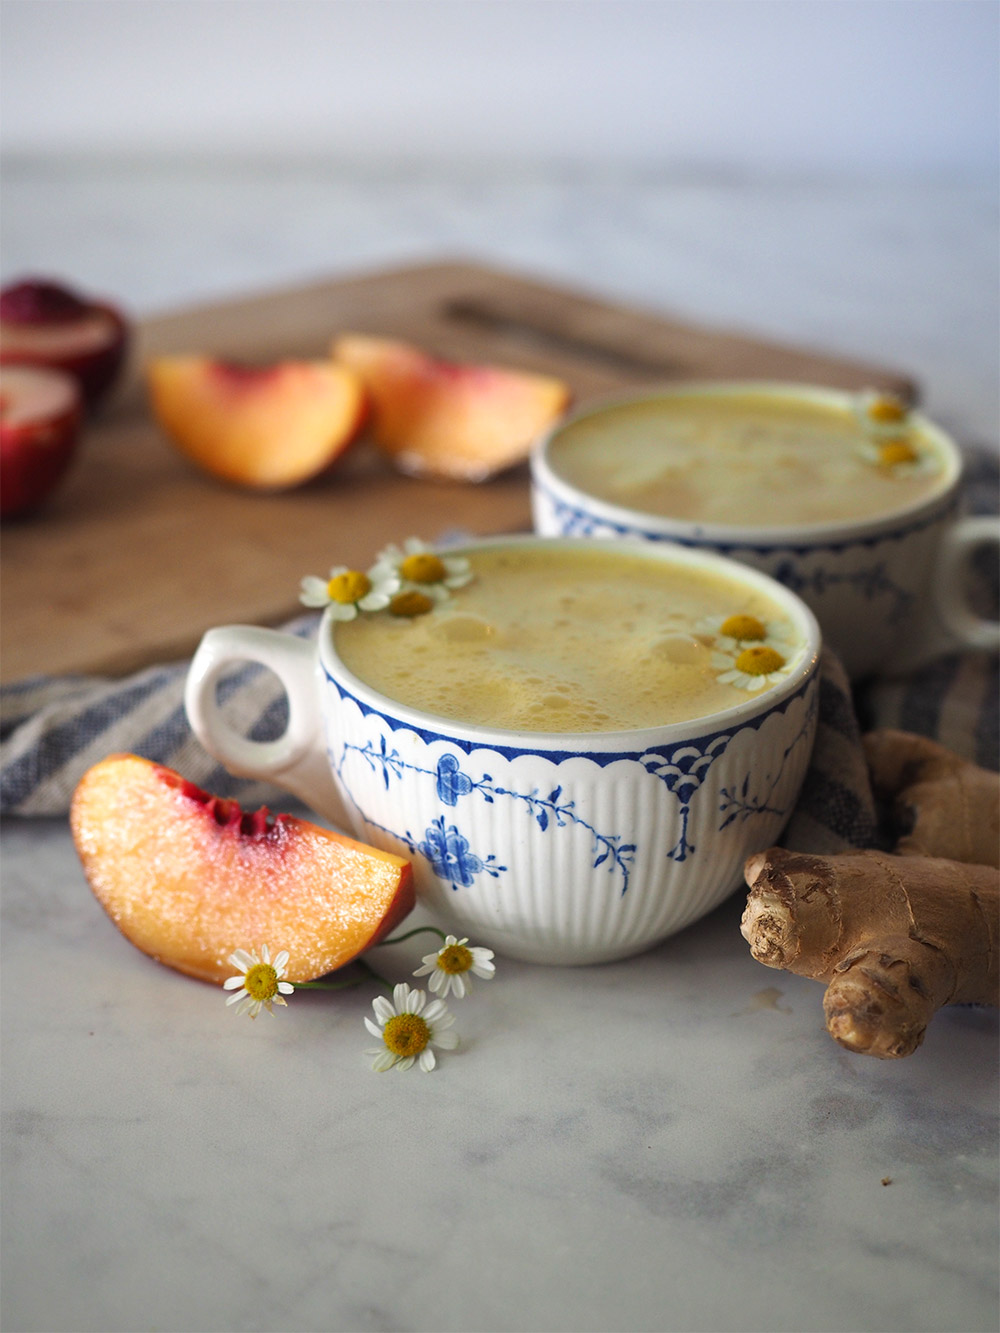 This vegan tea latte combines farmers market fresh peaches with cozy chamomile tea, fresh ginger root, coconut oil and cardamom to make the perfect end of summer elixir.